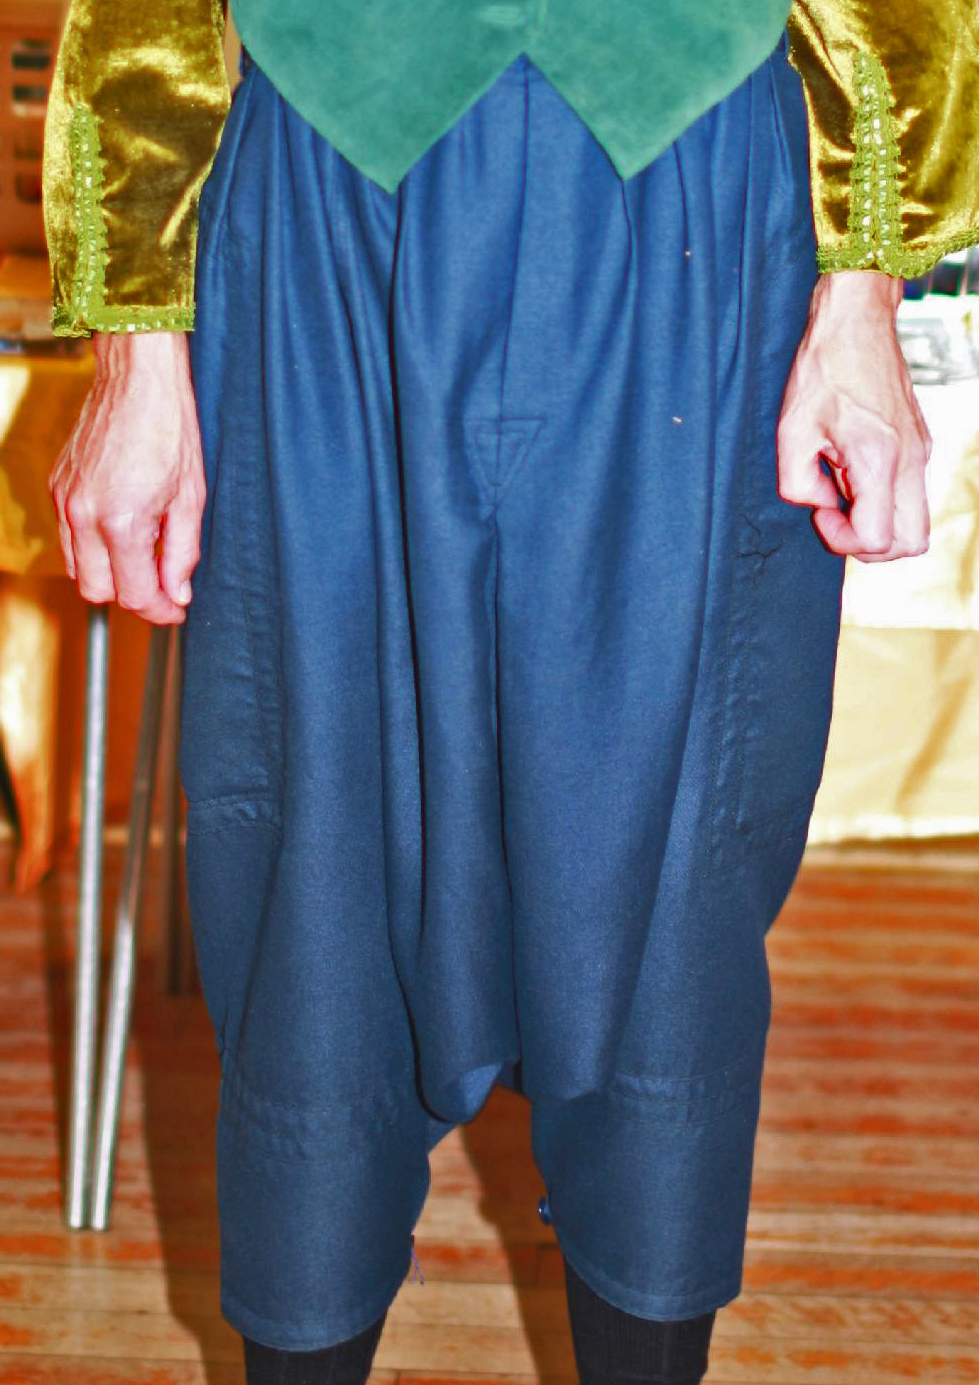 Blue Moroccan qandrissi (detail of pleats, dart, and cuffs)